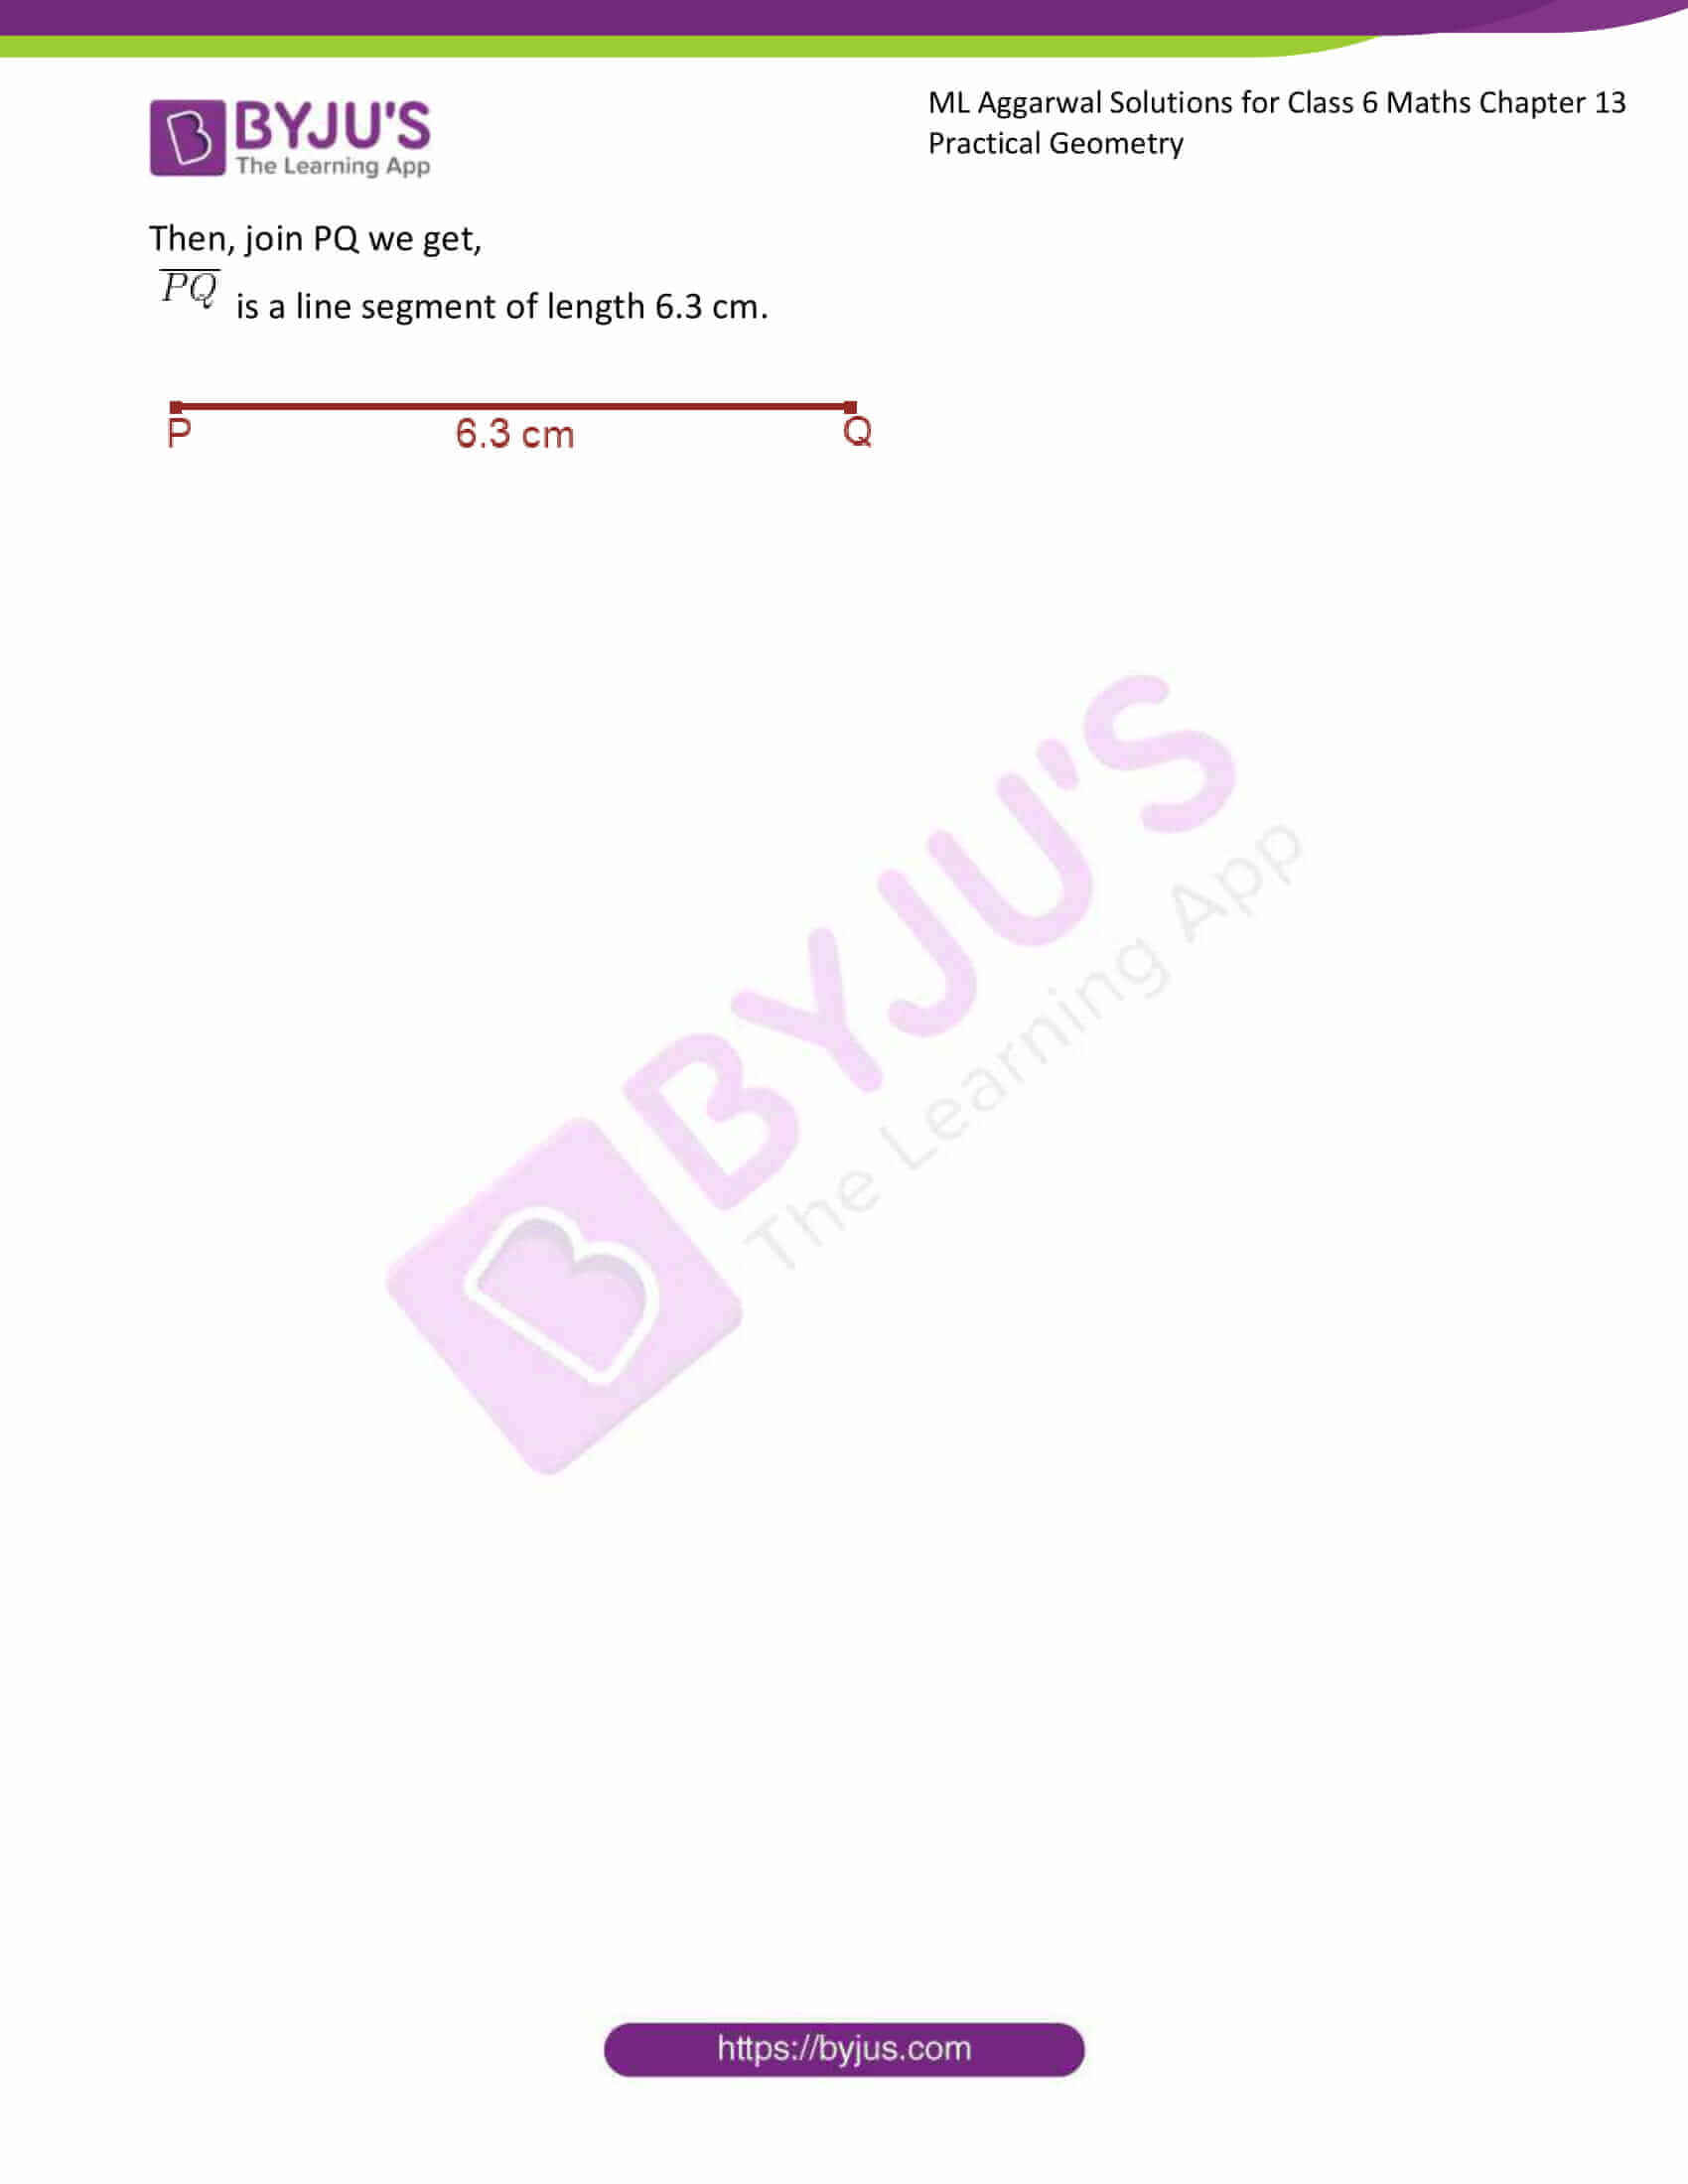 ml aggarwal solutions for class 6 maths chapter 13 6